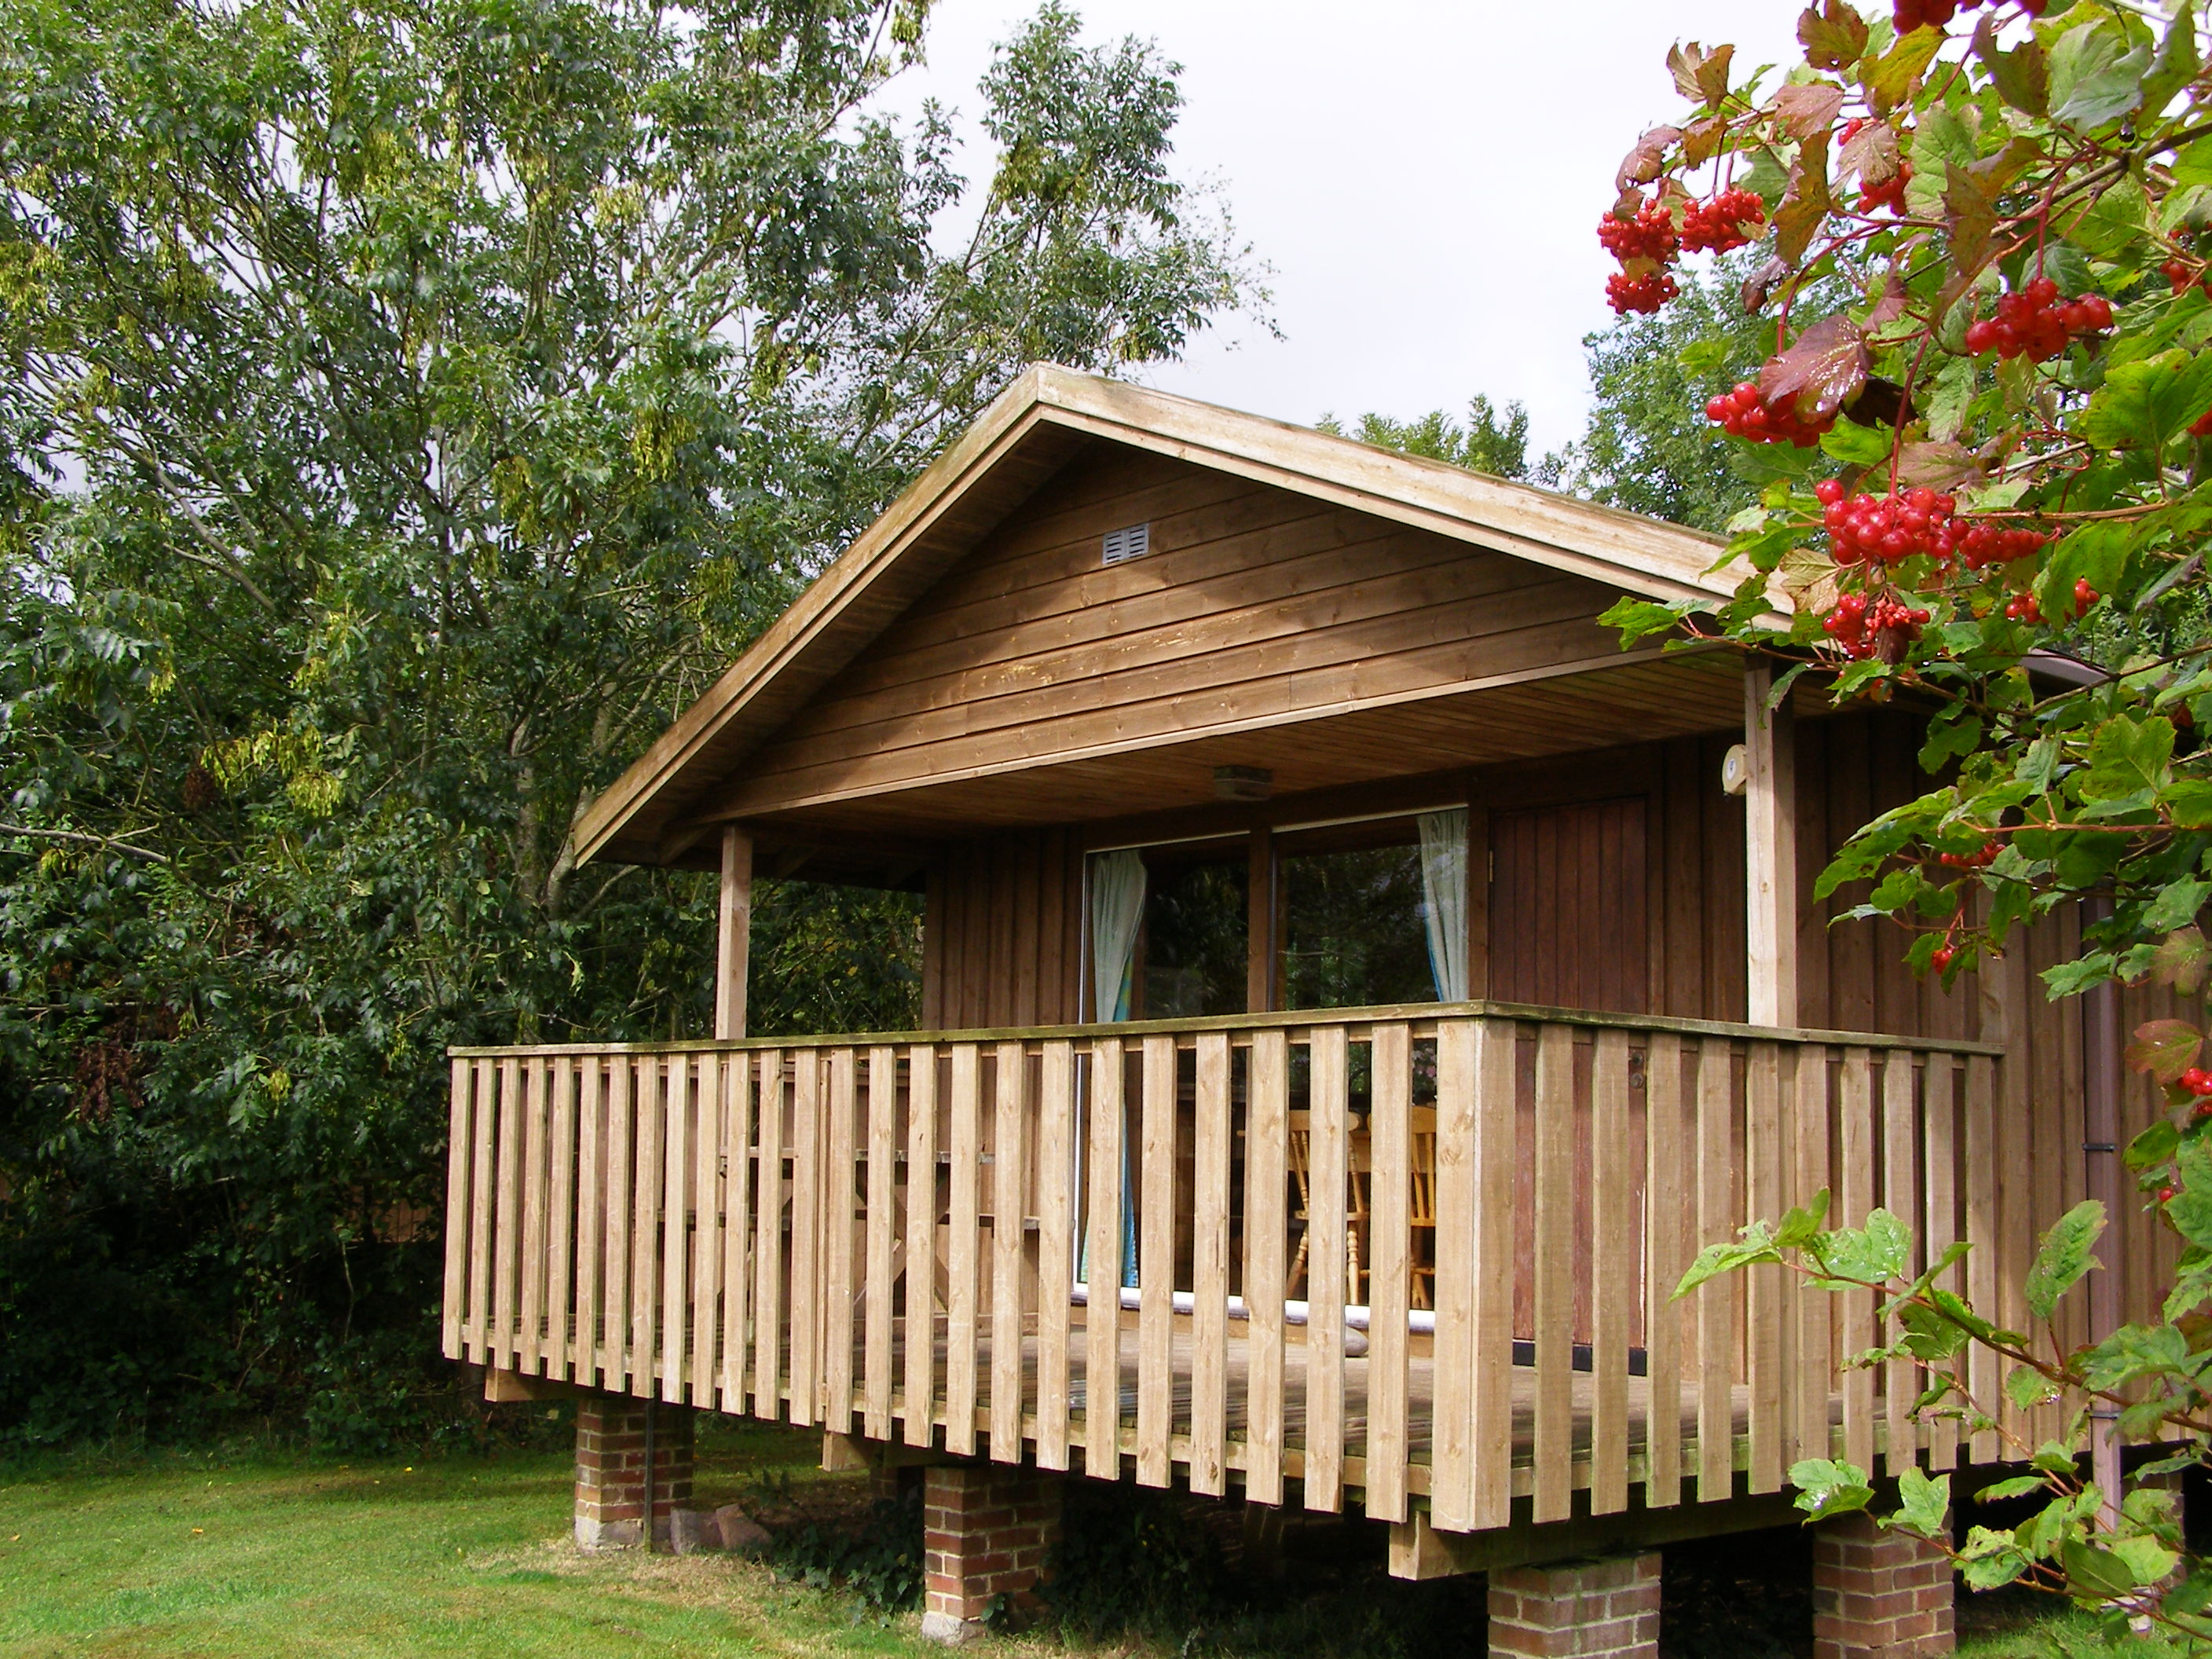 There are four eco-lodges in the Unesco Biosphere Reserve in North Devon with everything you could want for a snug stay